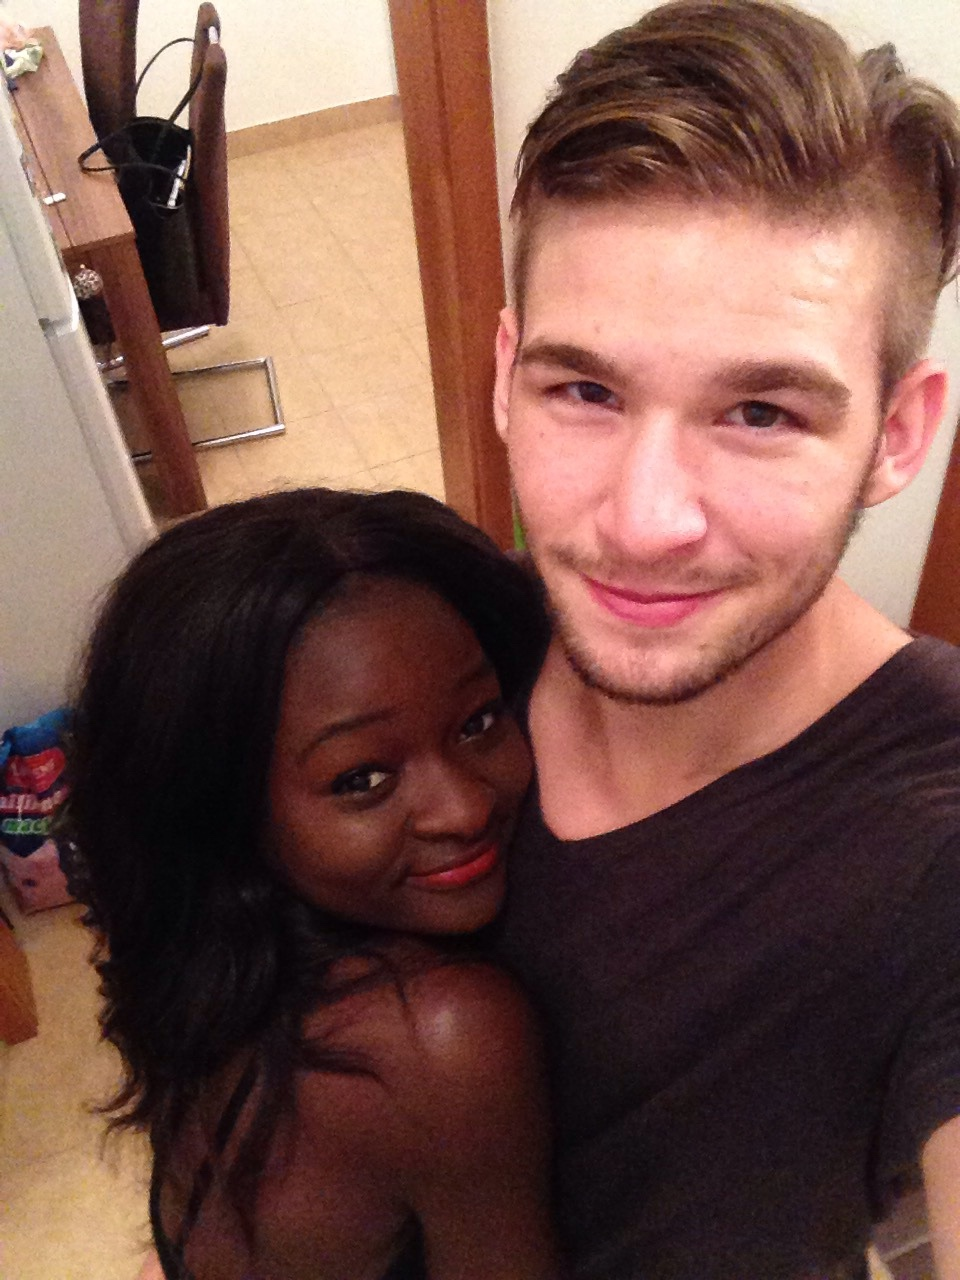 Interacial Complete bwwm relationship | via tumblr on we heart it